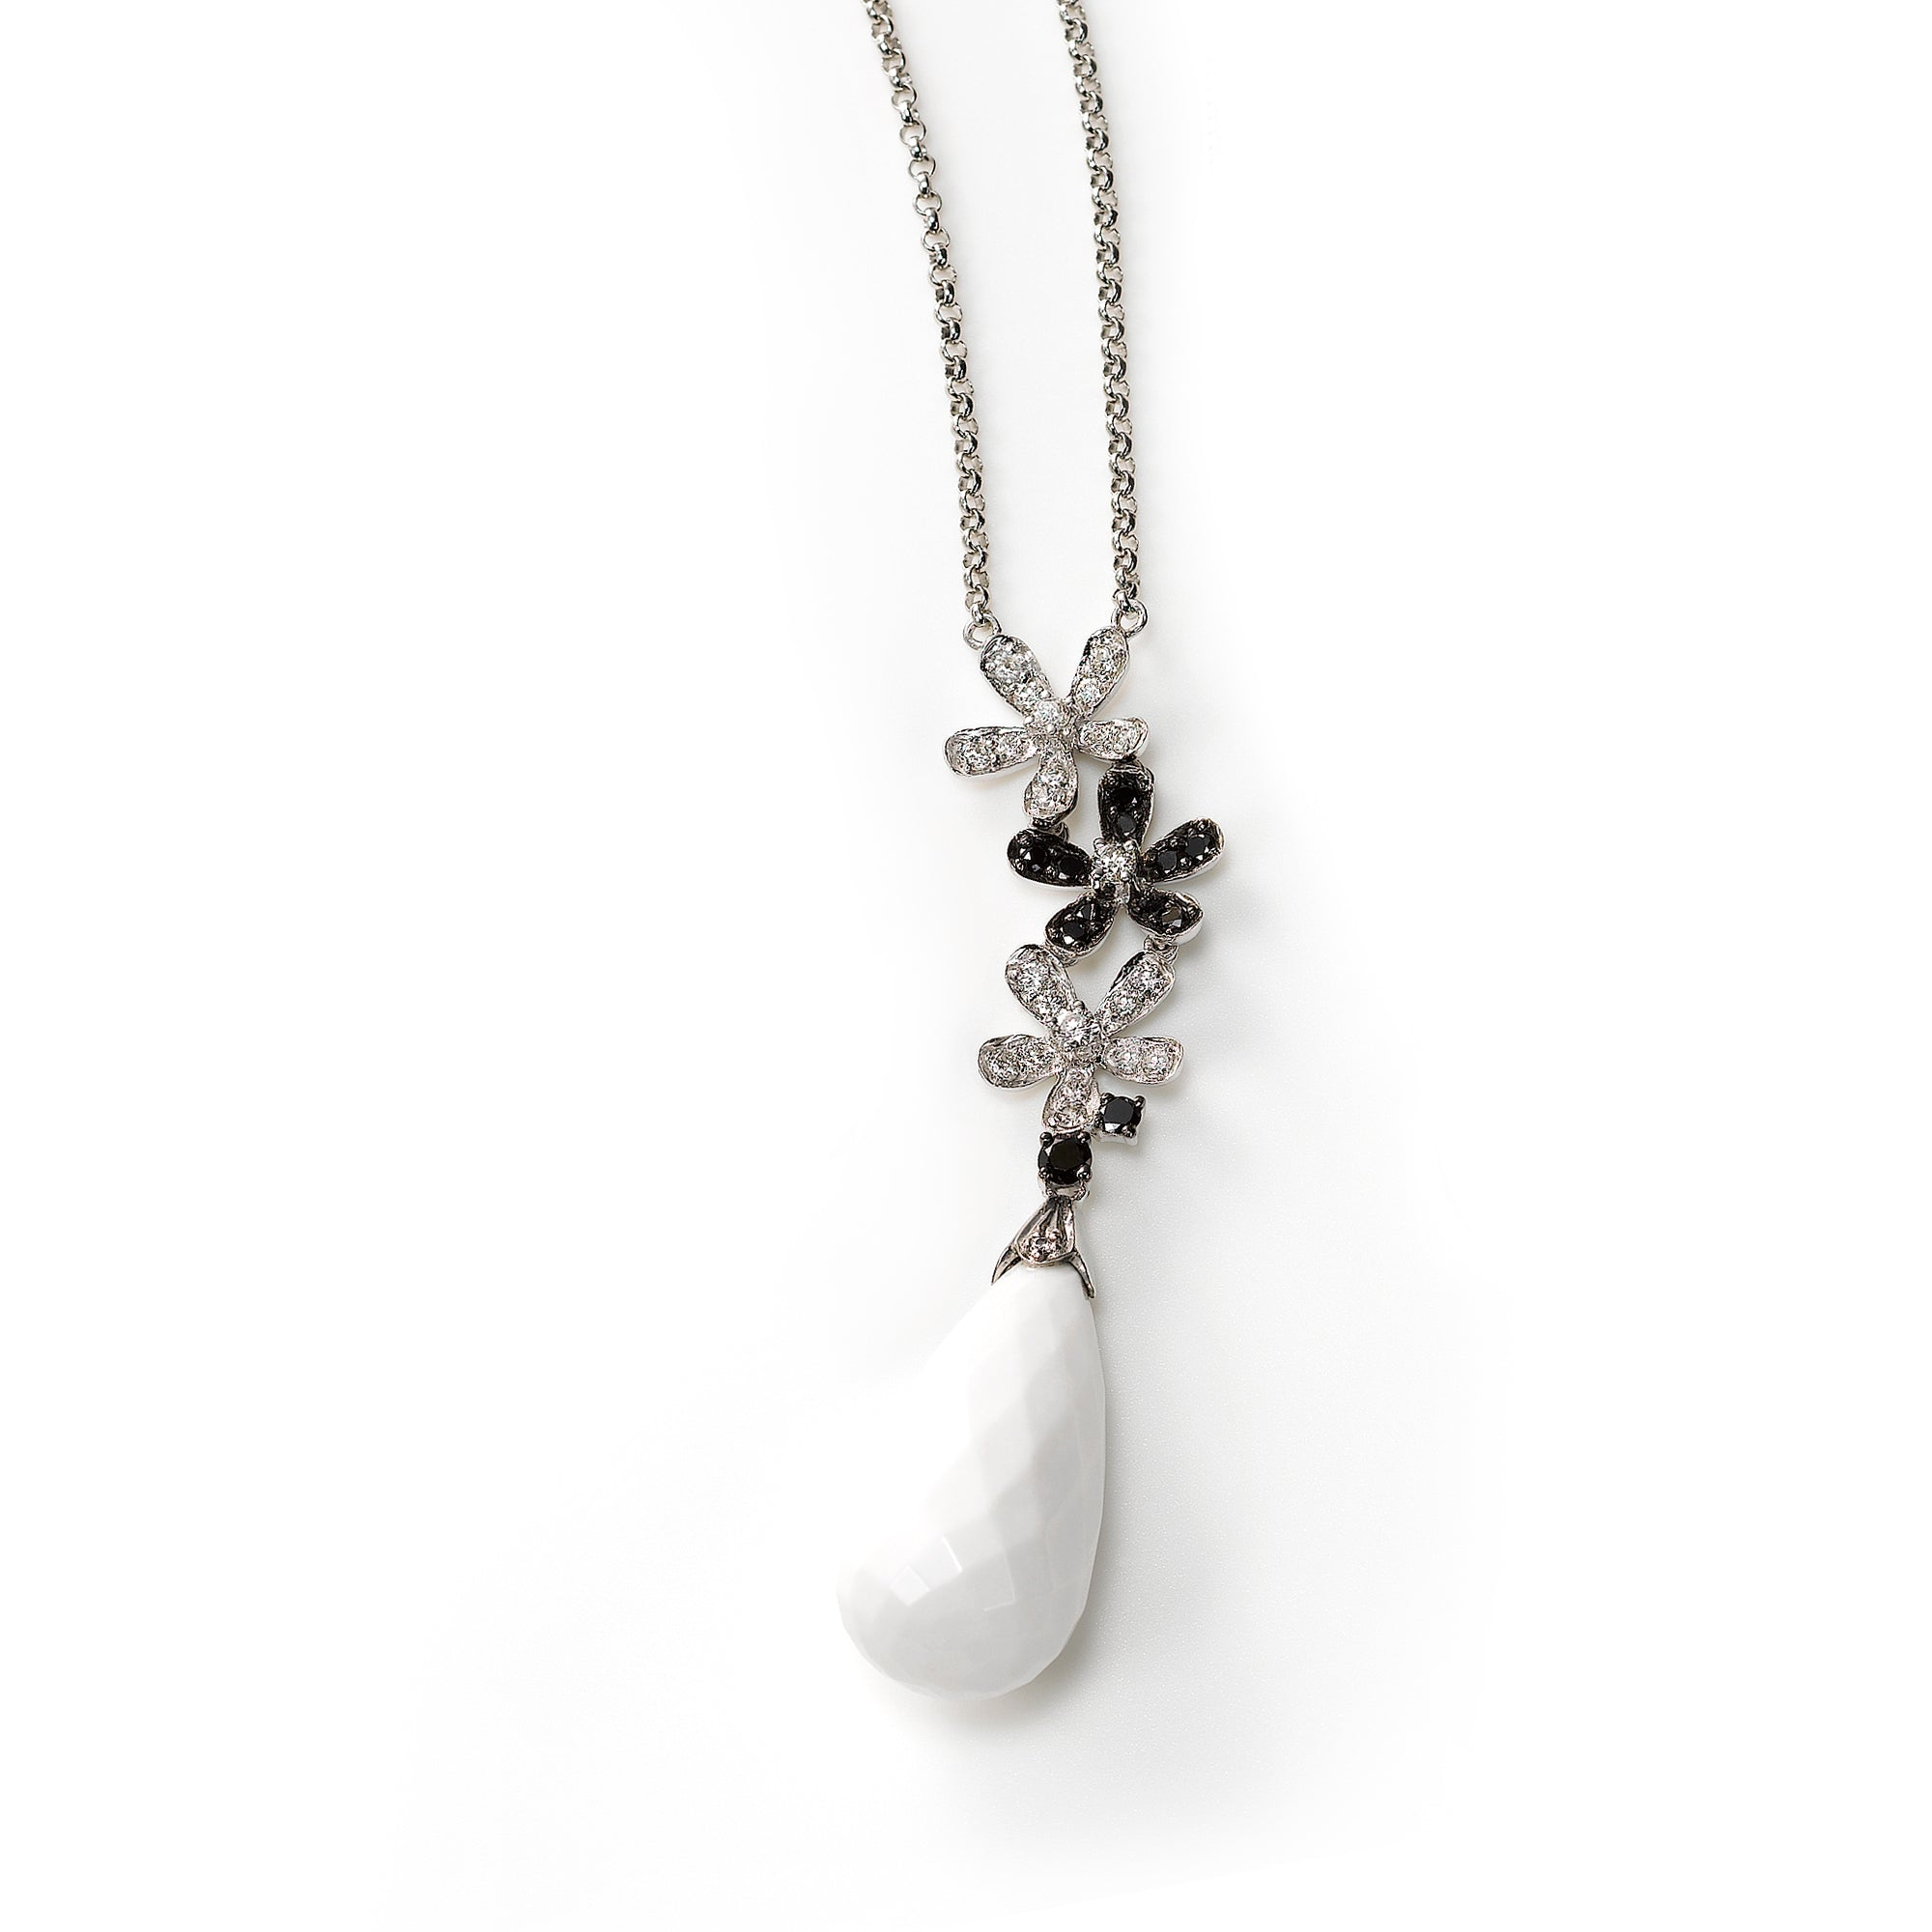 White Agate and Diamond Necklace, 14K White Gold